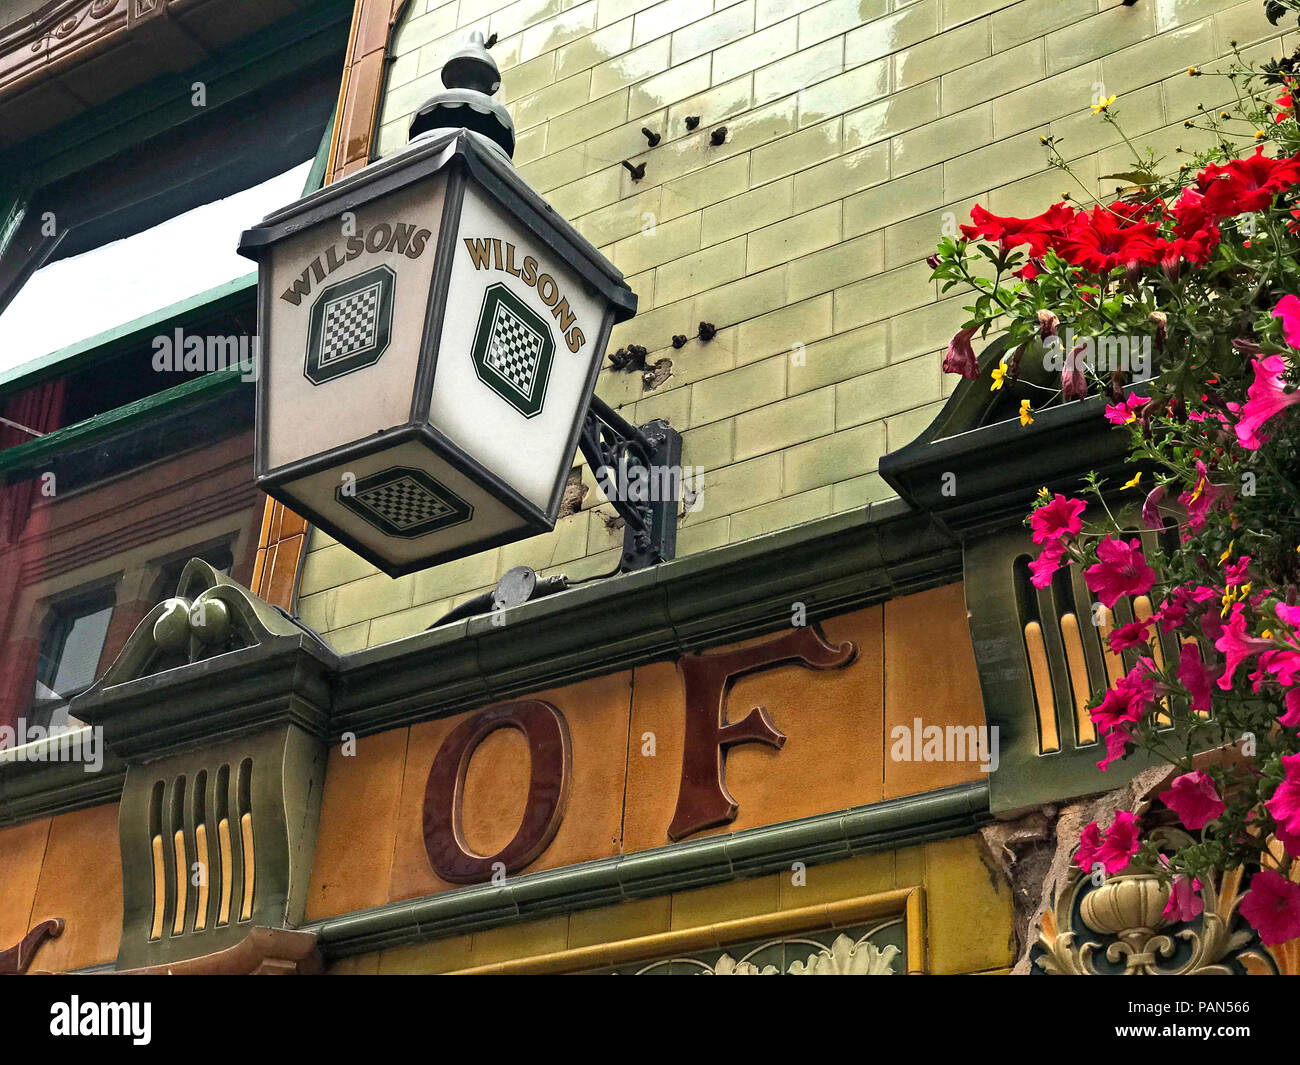 Wilsons Brewery Lamp, Peveril Of The Peak pub, Great Bridgewater Street, Manchester, North West England, UK - Stock Image